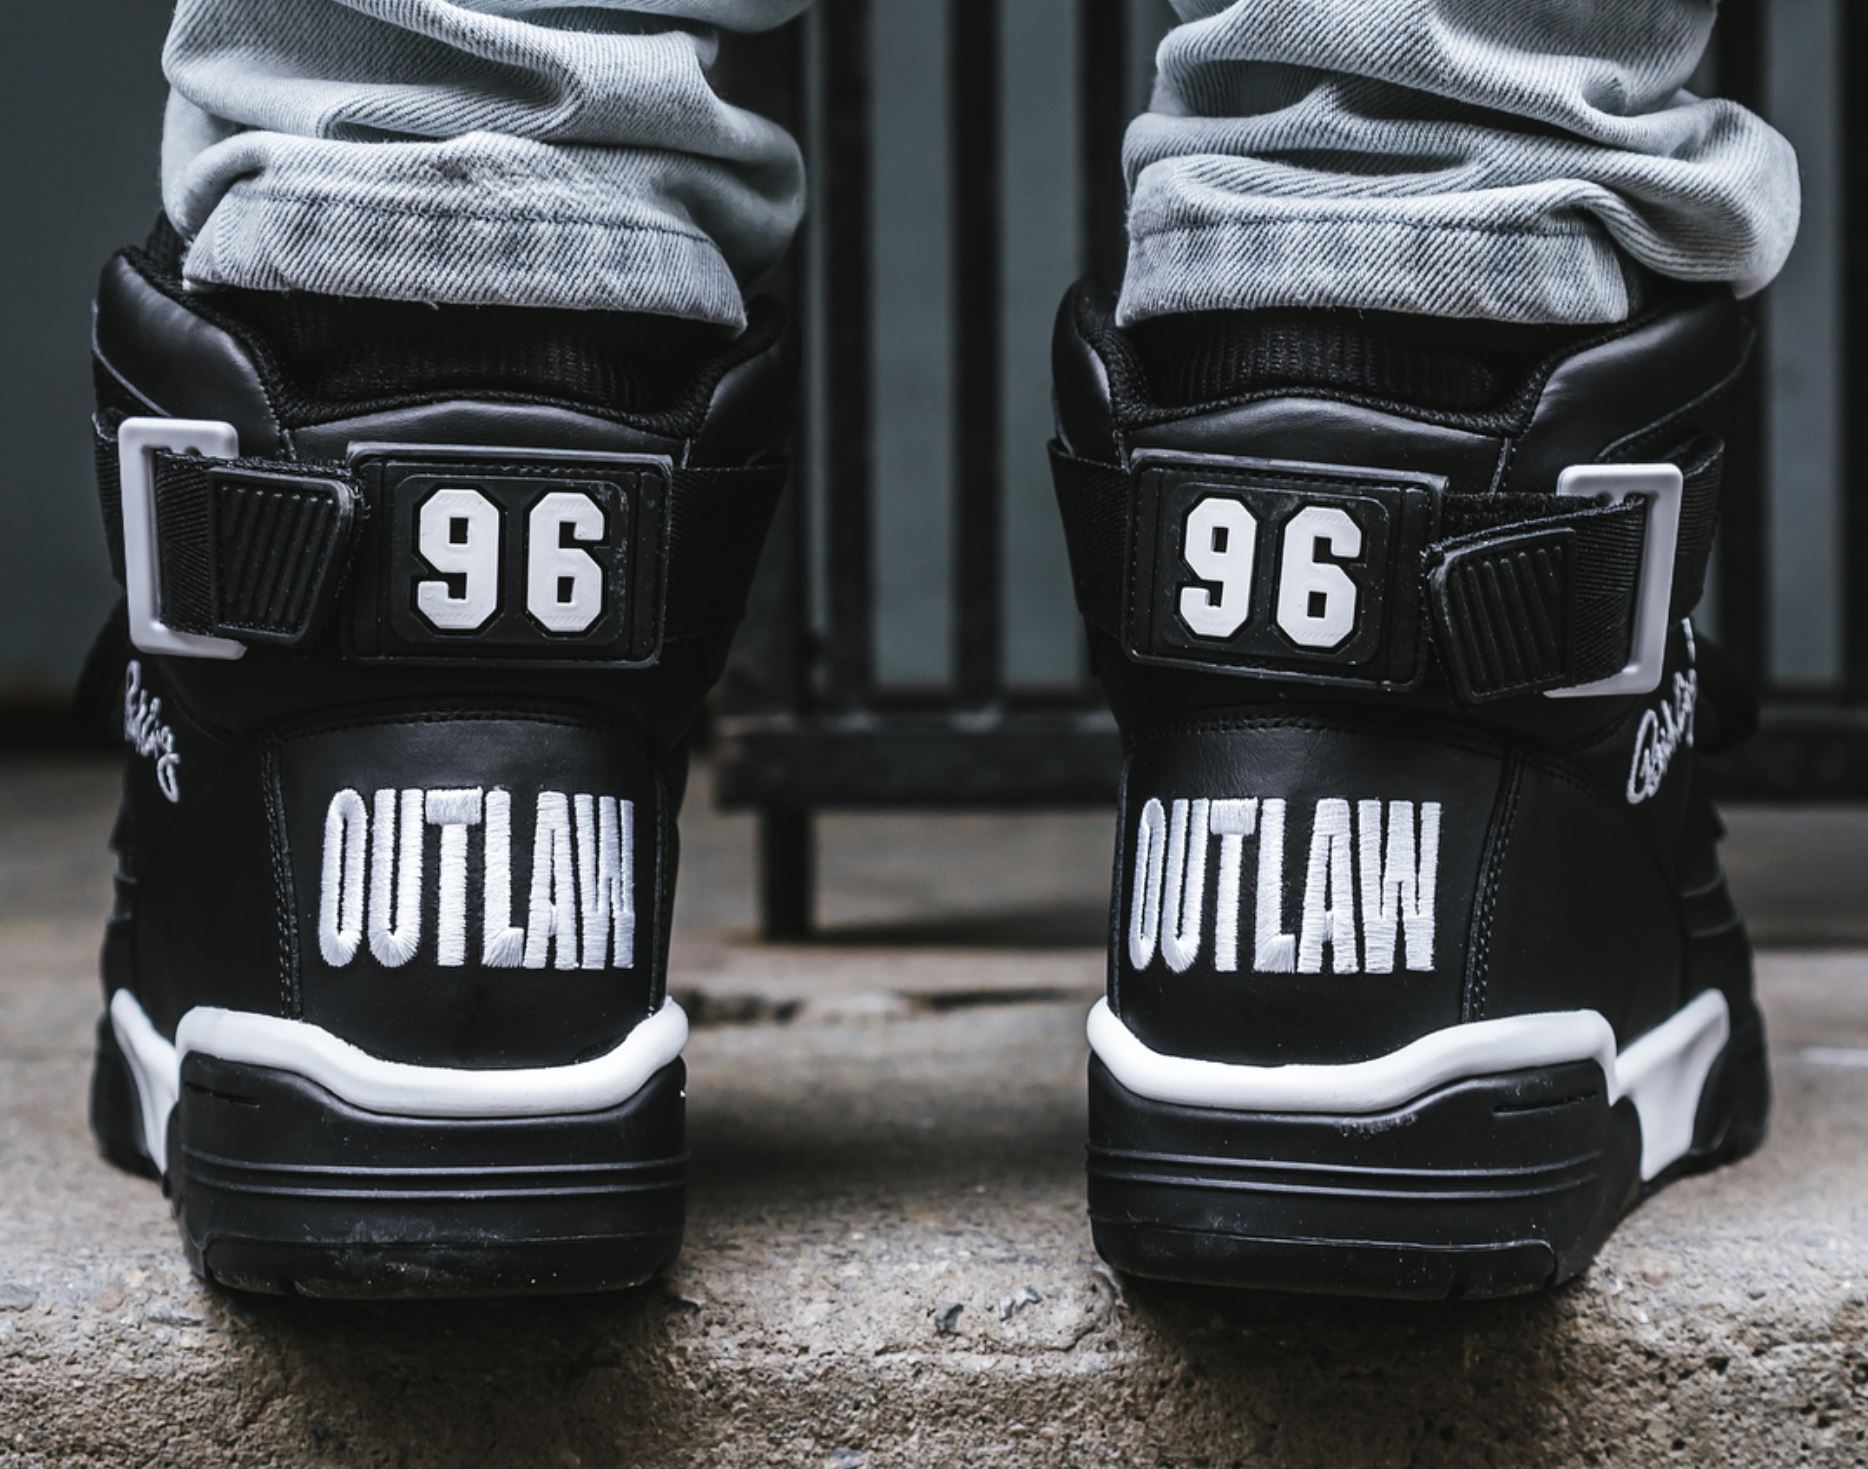 the outlawz ewing 33 hi 2